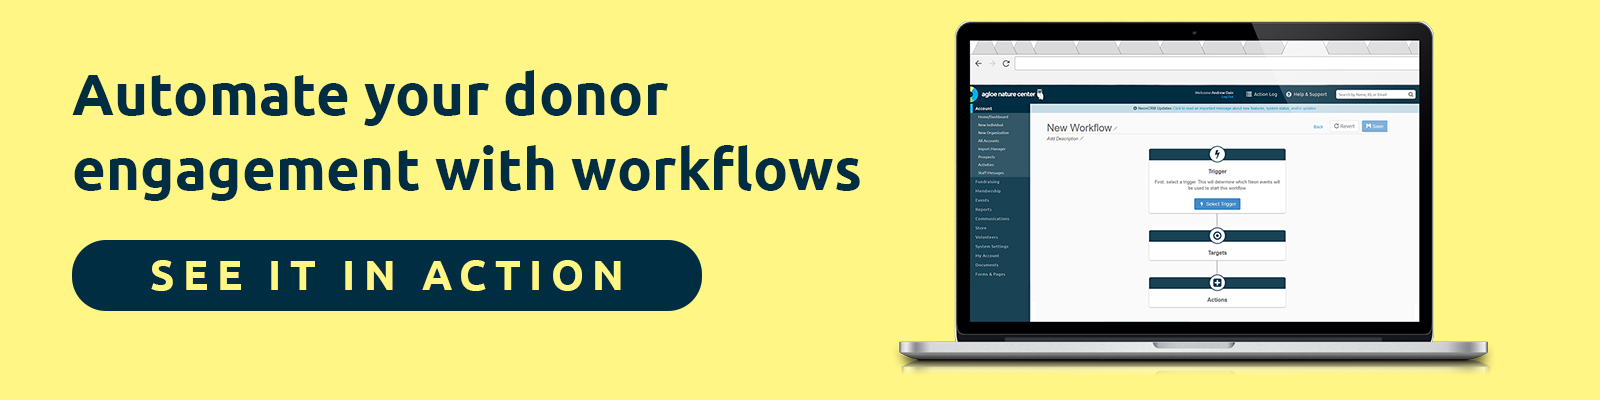 Automate your donor engagement with workflows.